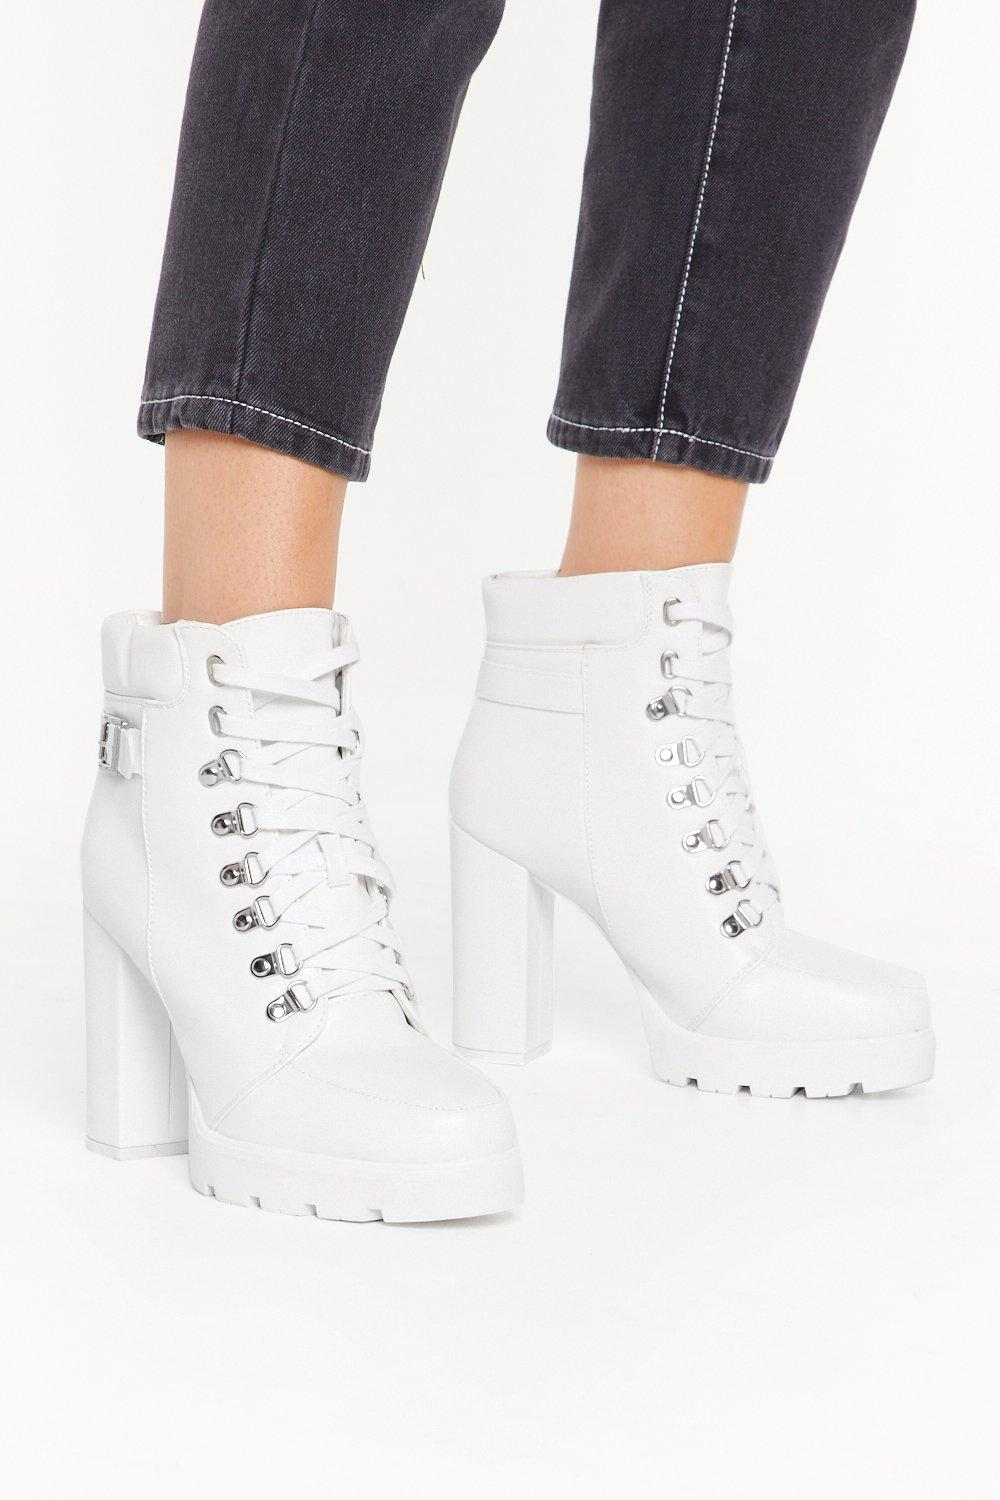 Image of Walk With Us Faux Leather Platform Boots